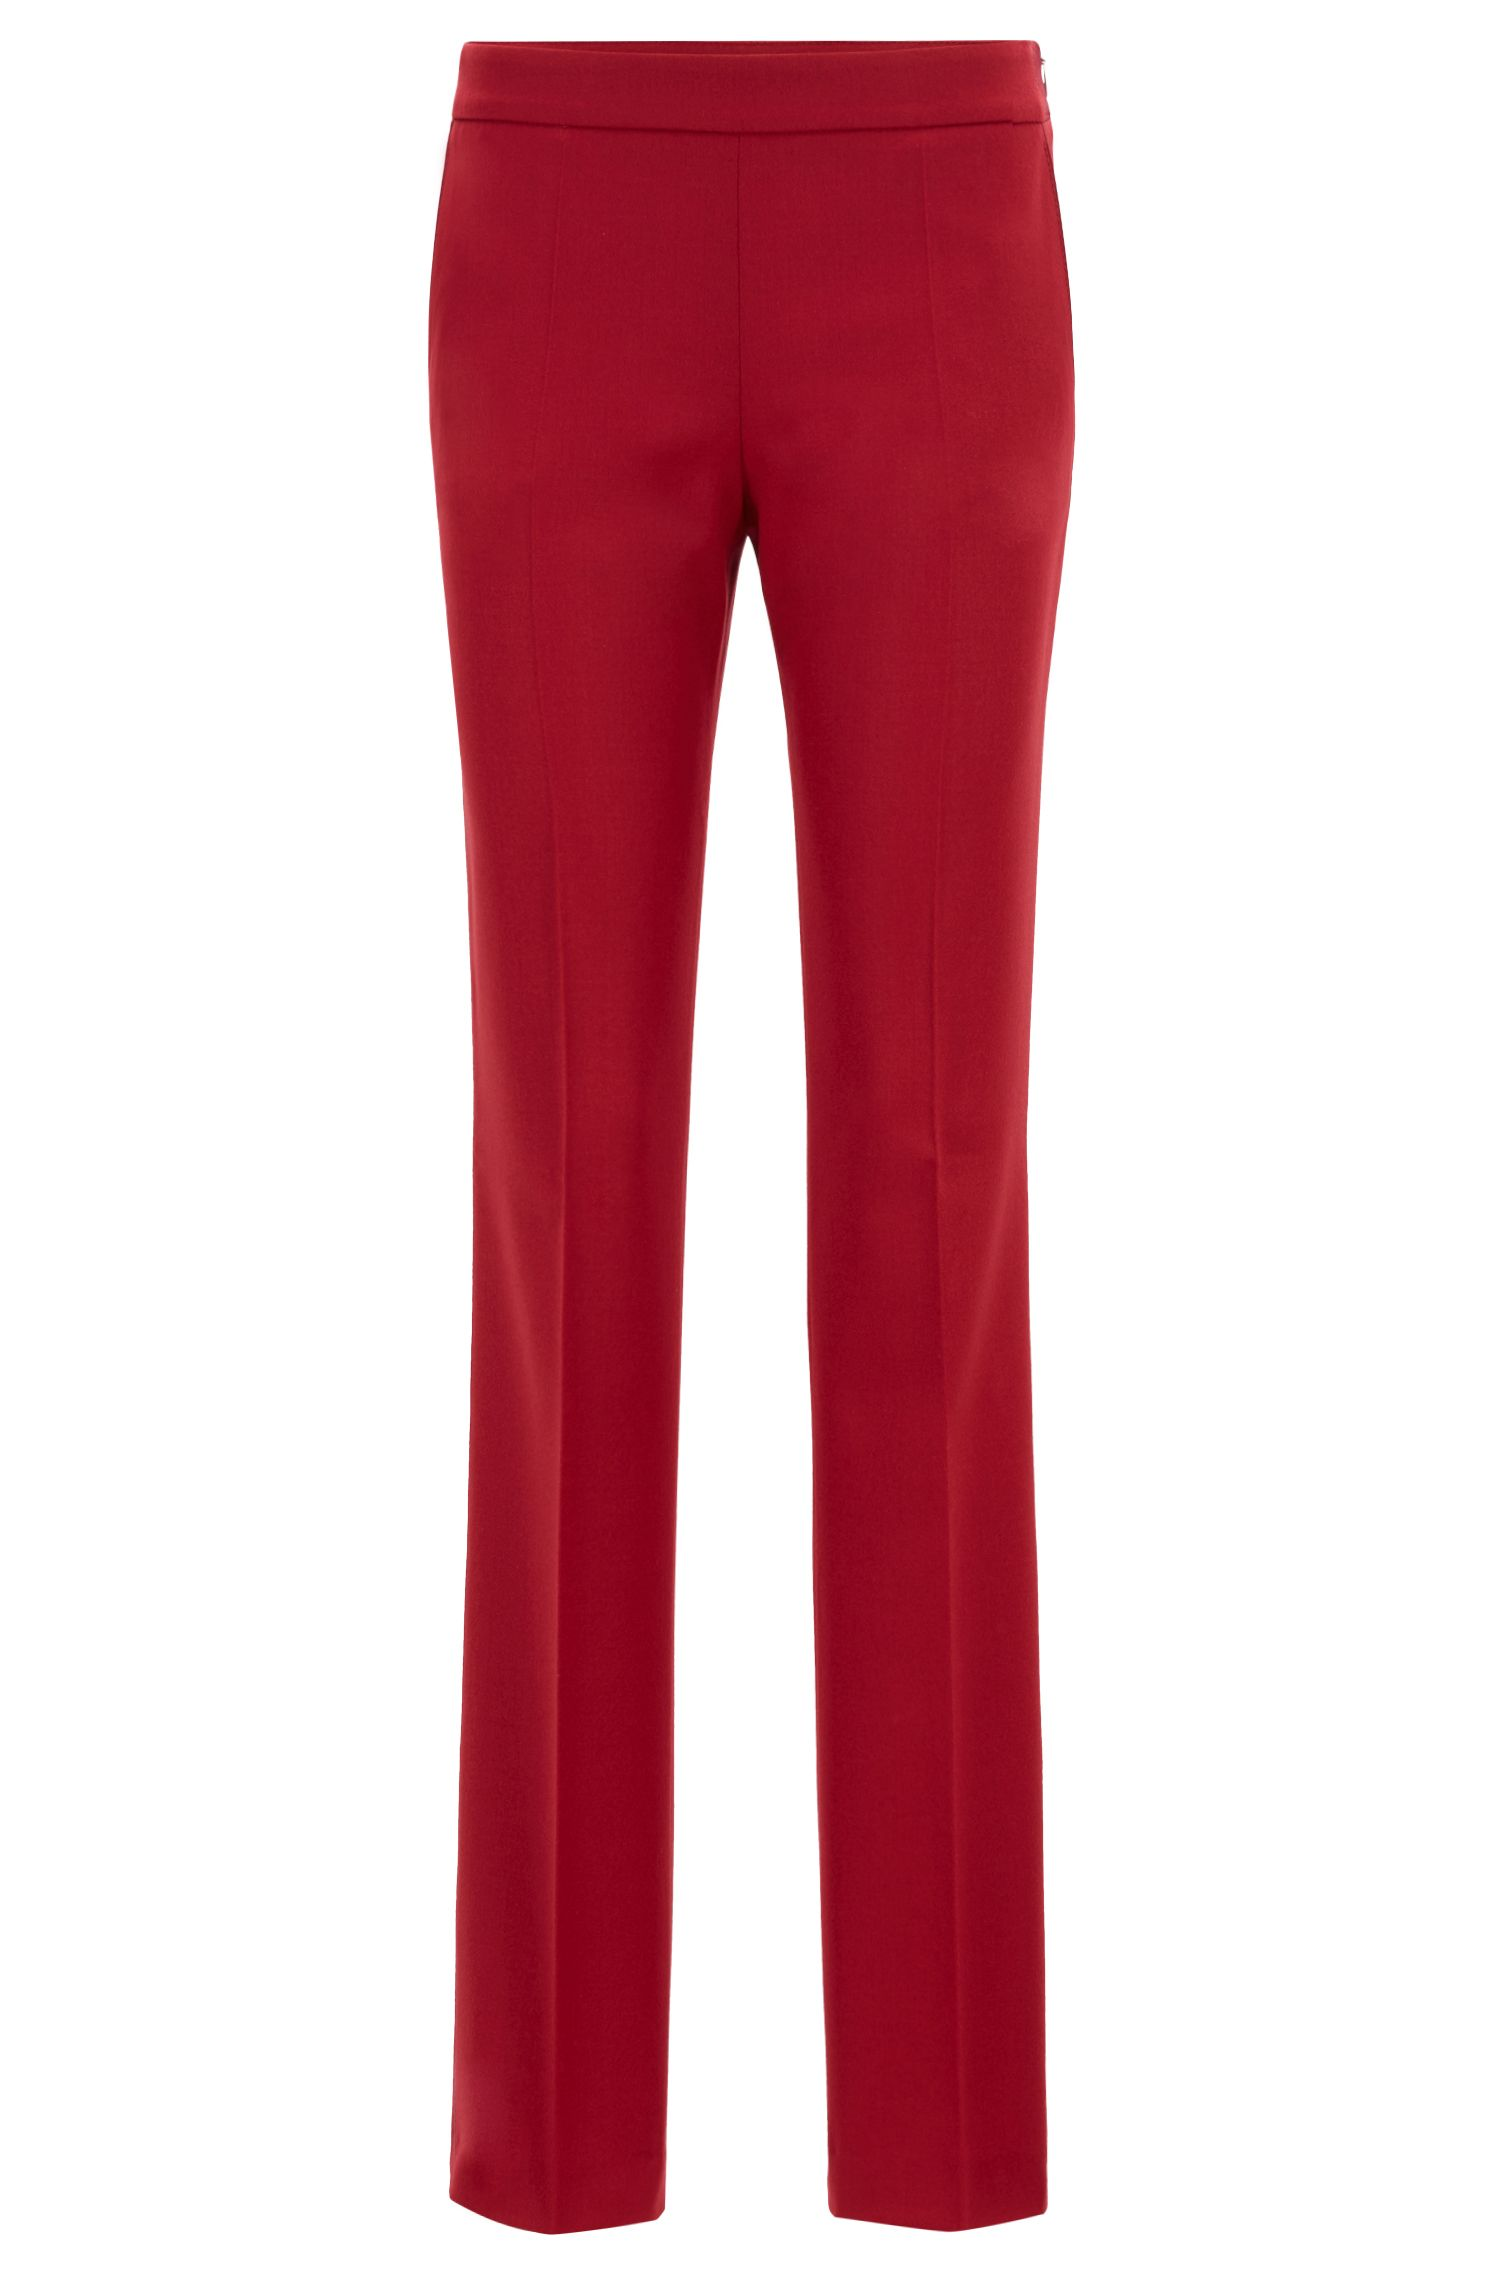 Regular-fit pantalon van wol met stretch, Donkerrood